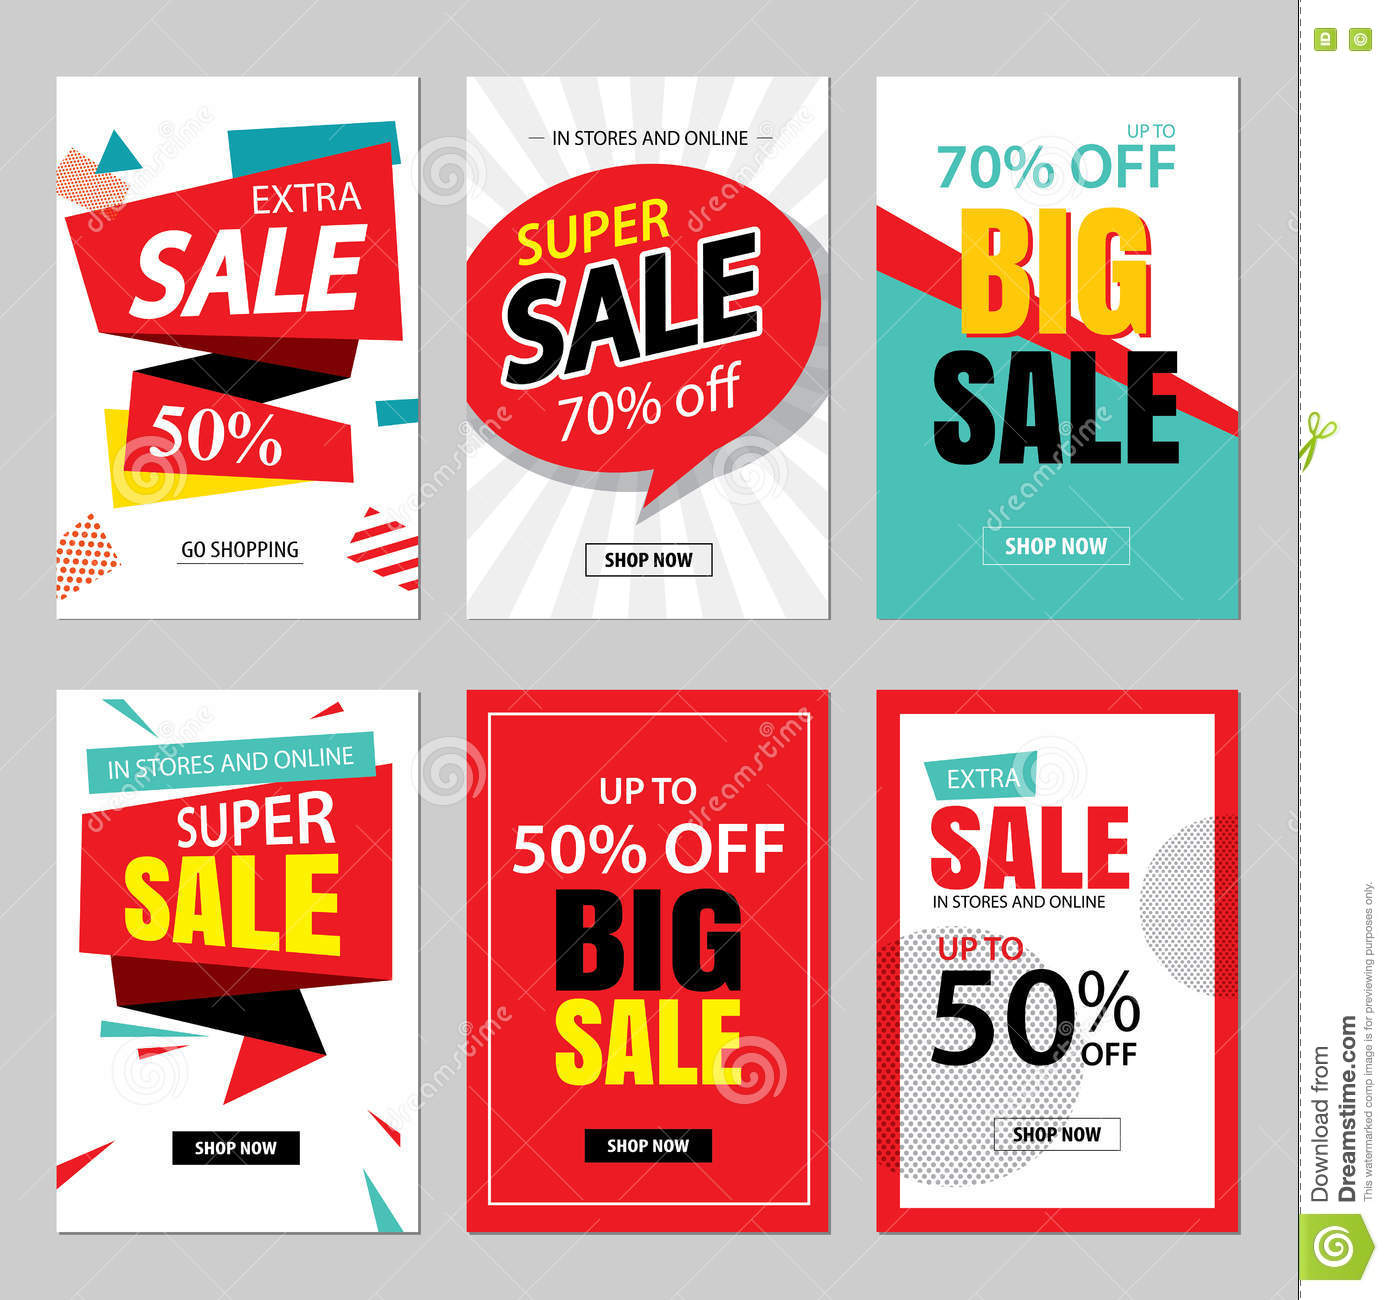 4ae1daa18 Set of sale website banner templates.Social media banners for online  shopping. illustrations for posters, email and newsletter designs, ads, ...